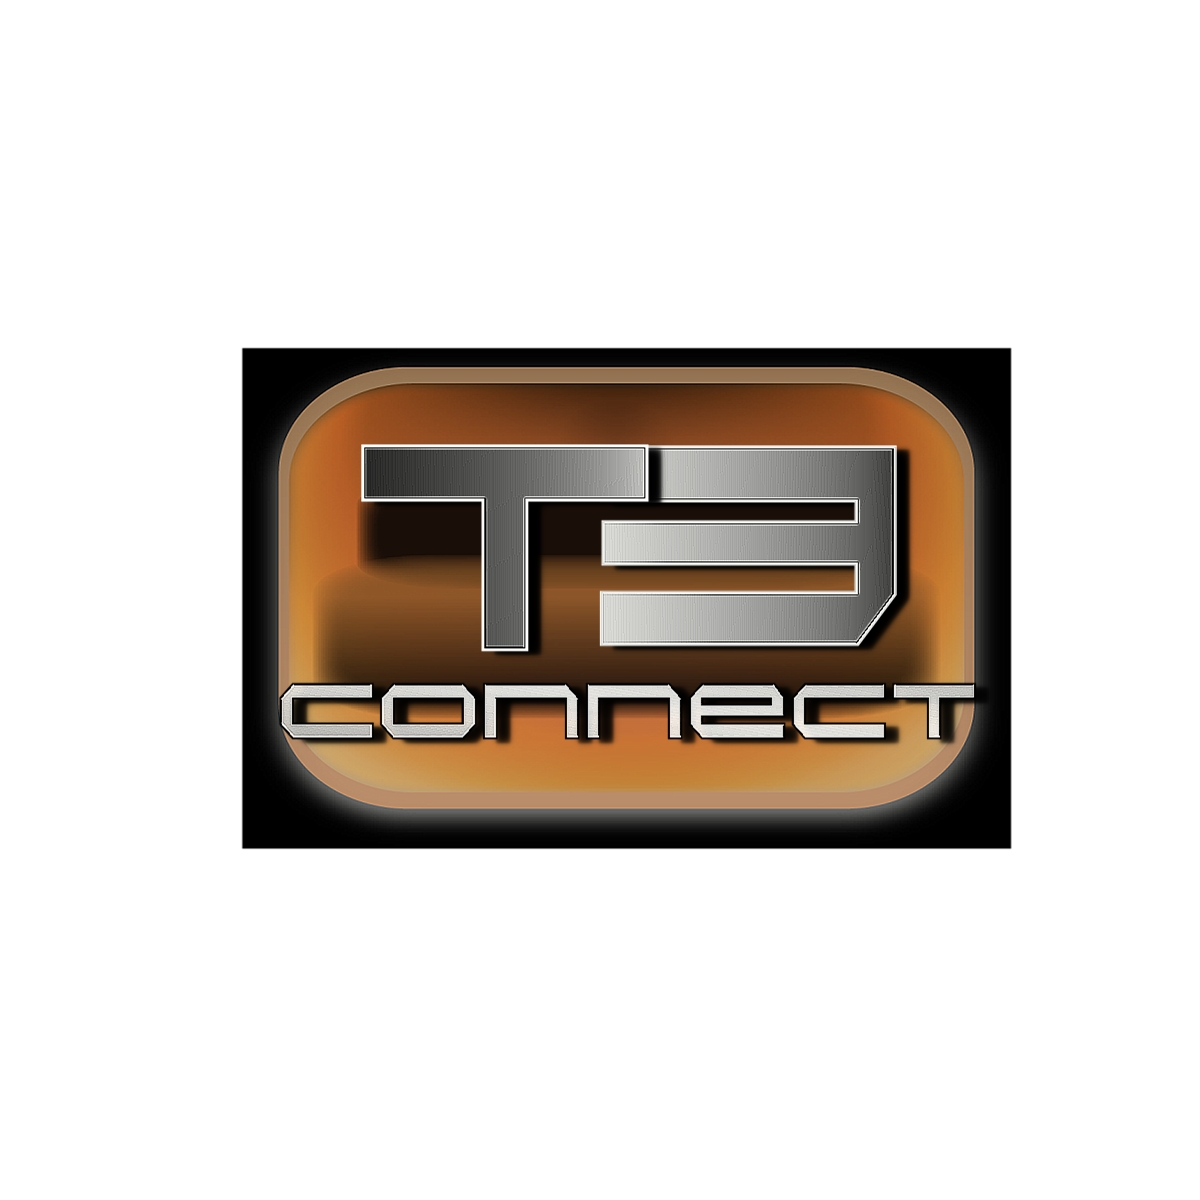 Logo Design by Joseph calunsag Cagaanan - Entry No. 68 in the Logo Design Contest T3 CONNECT Sports Marketing logo.